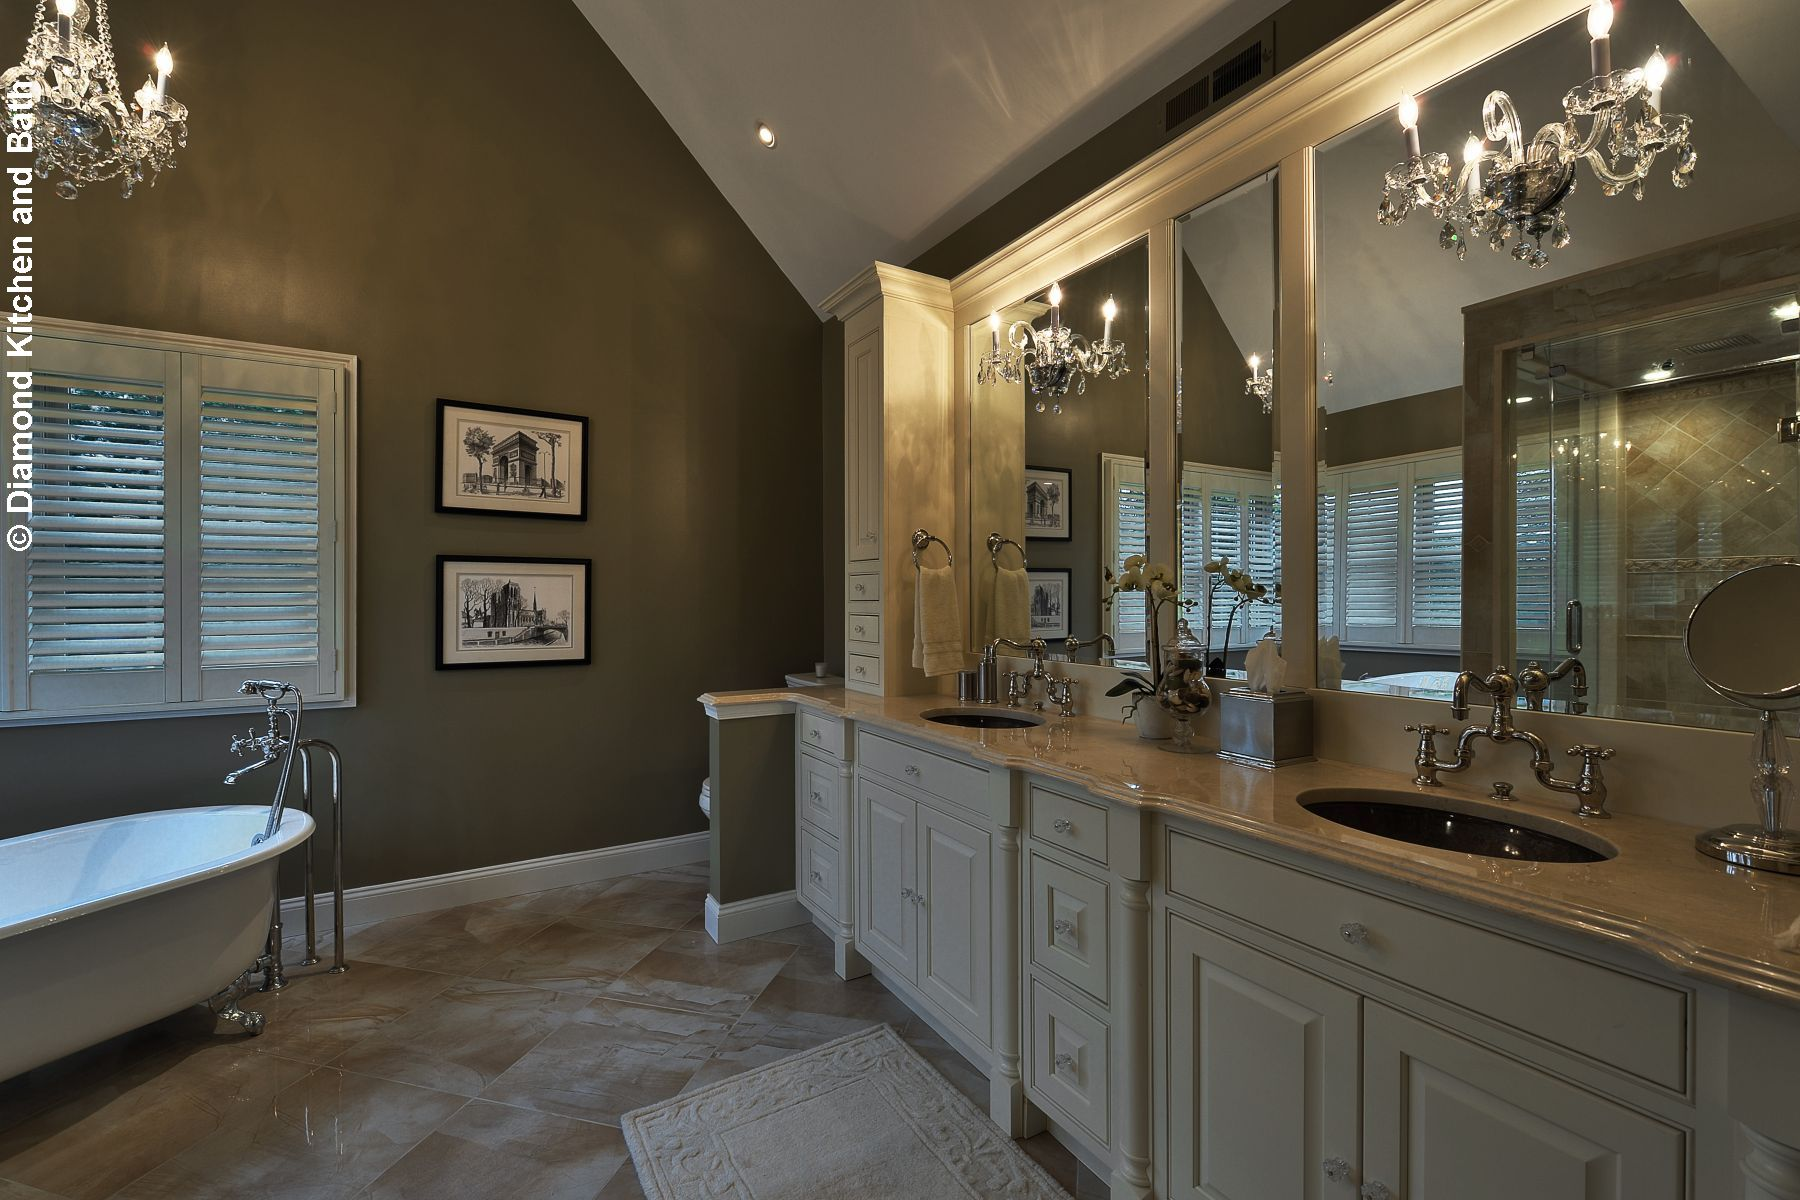 Bathroom Remodeling Virtual Tour in Lansdale, PA